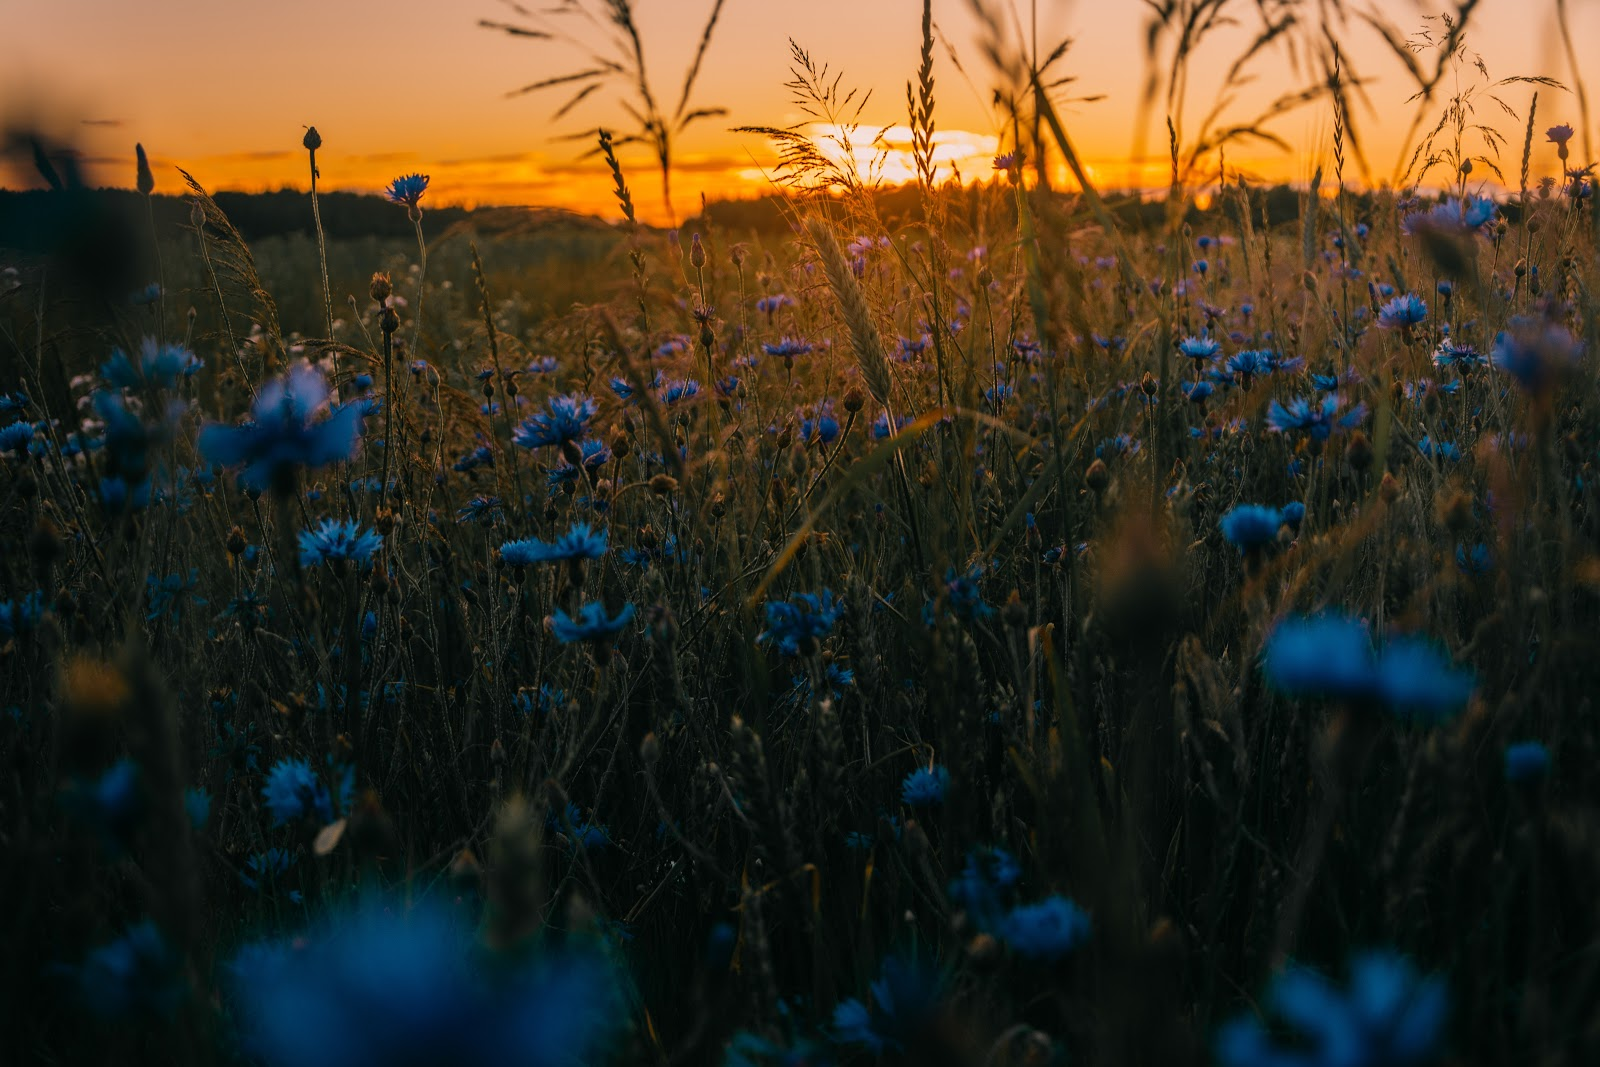 A sunset scene in a field of wildflowers.